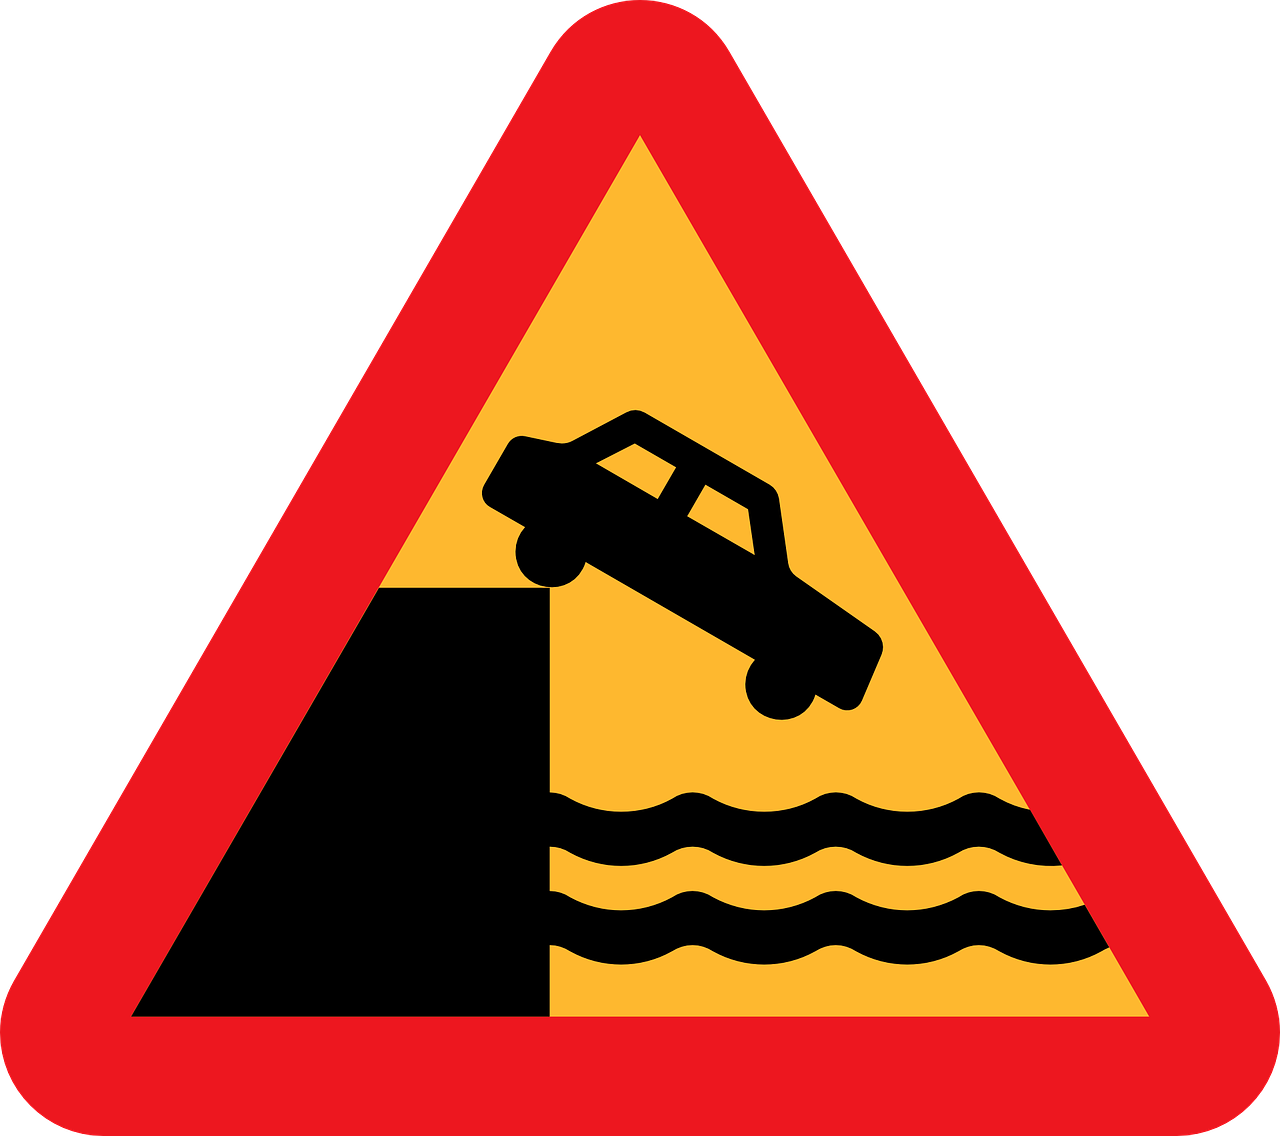 triangle-warning-sign-30522_1280.png